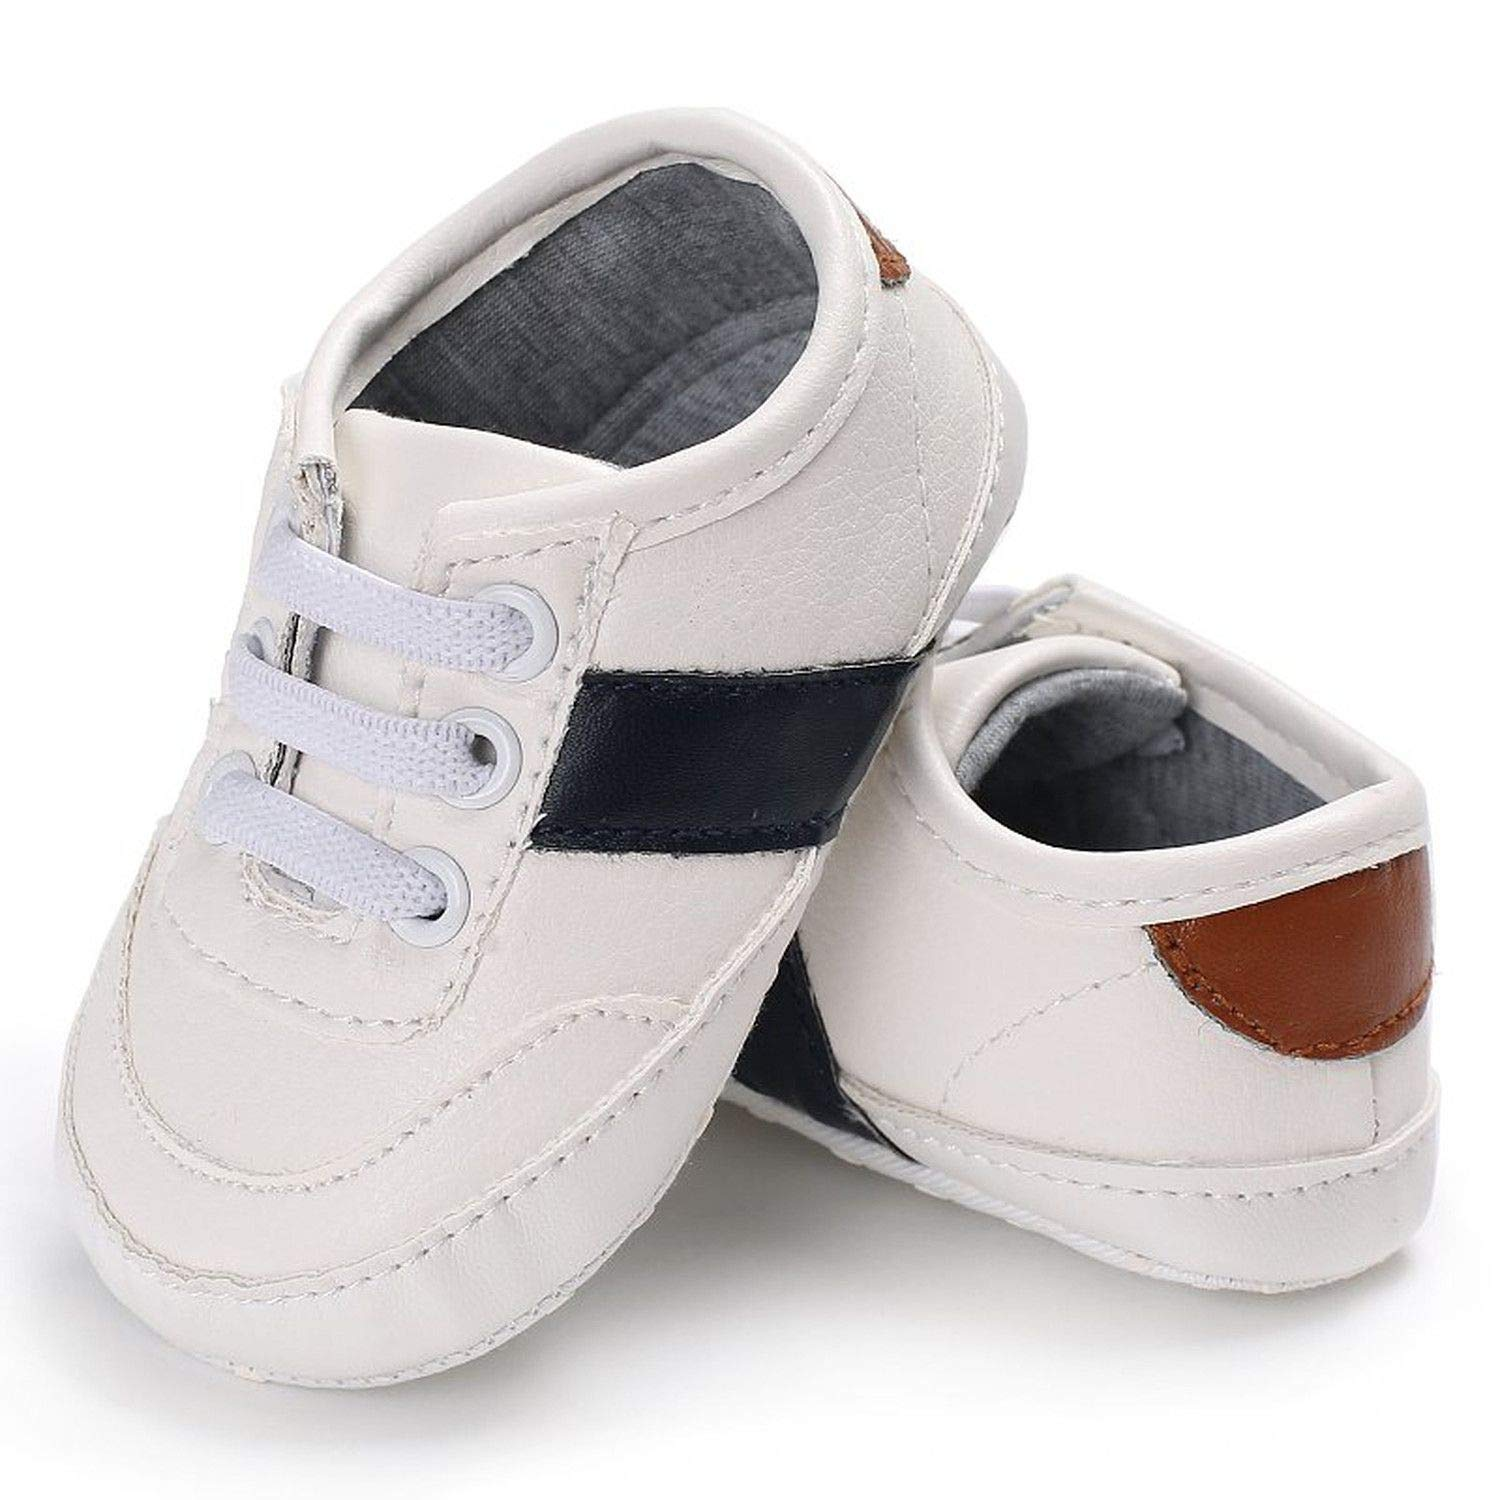 Beautymade Baby First Walkers Kid Fashion Soft Bottom Newborn Babies Shoes Pu Leather Prewalkers